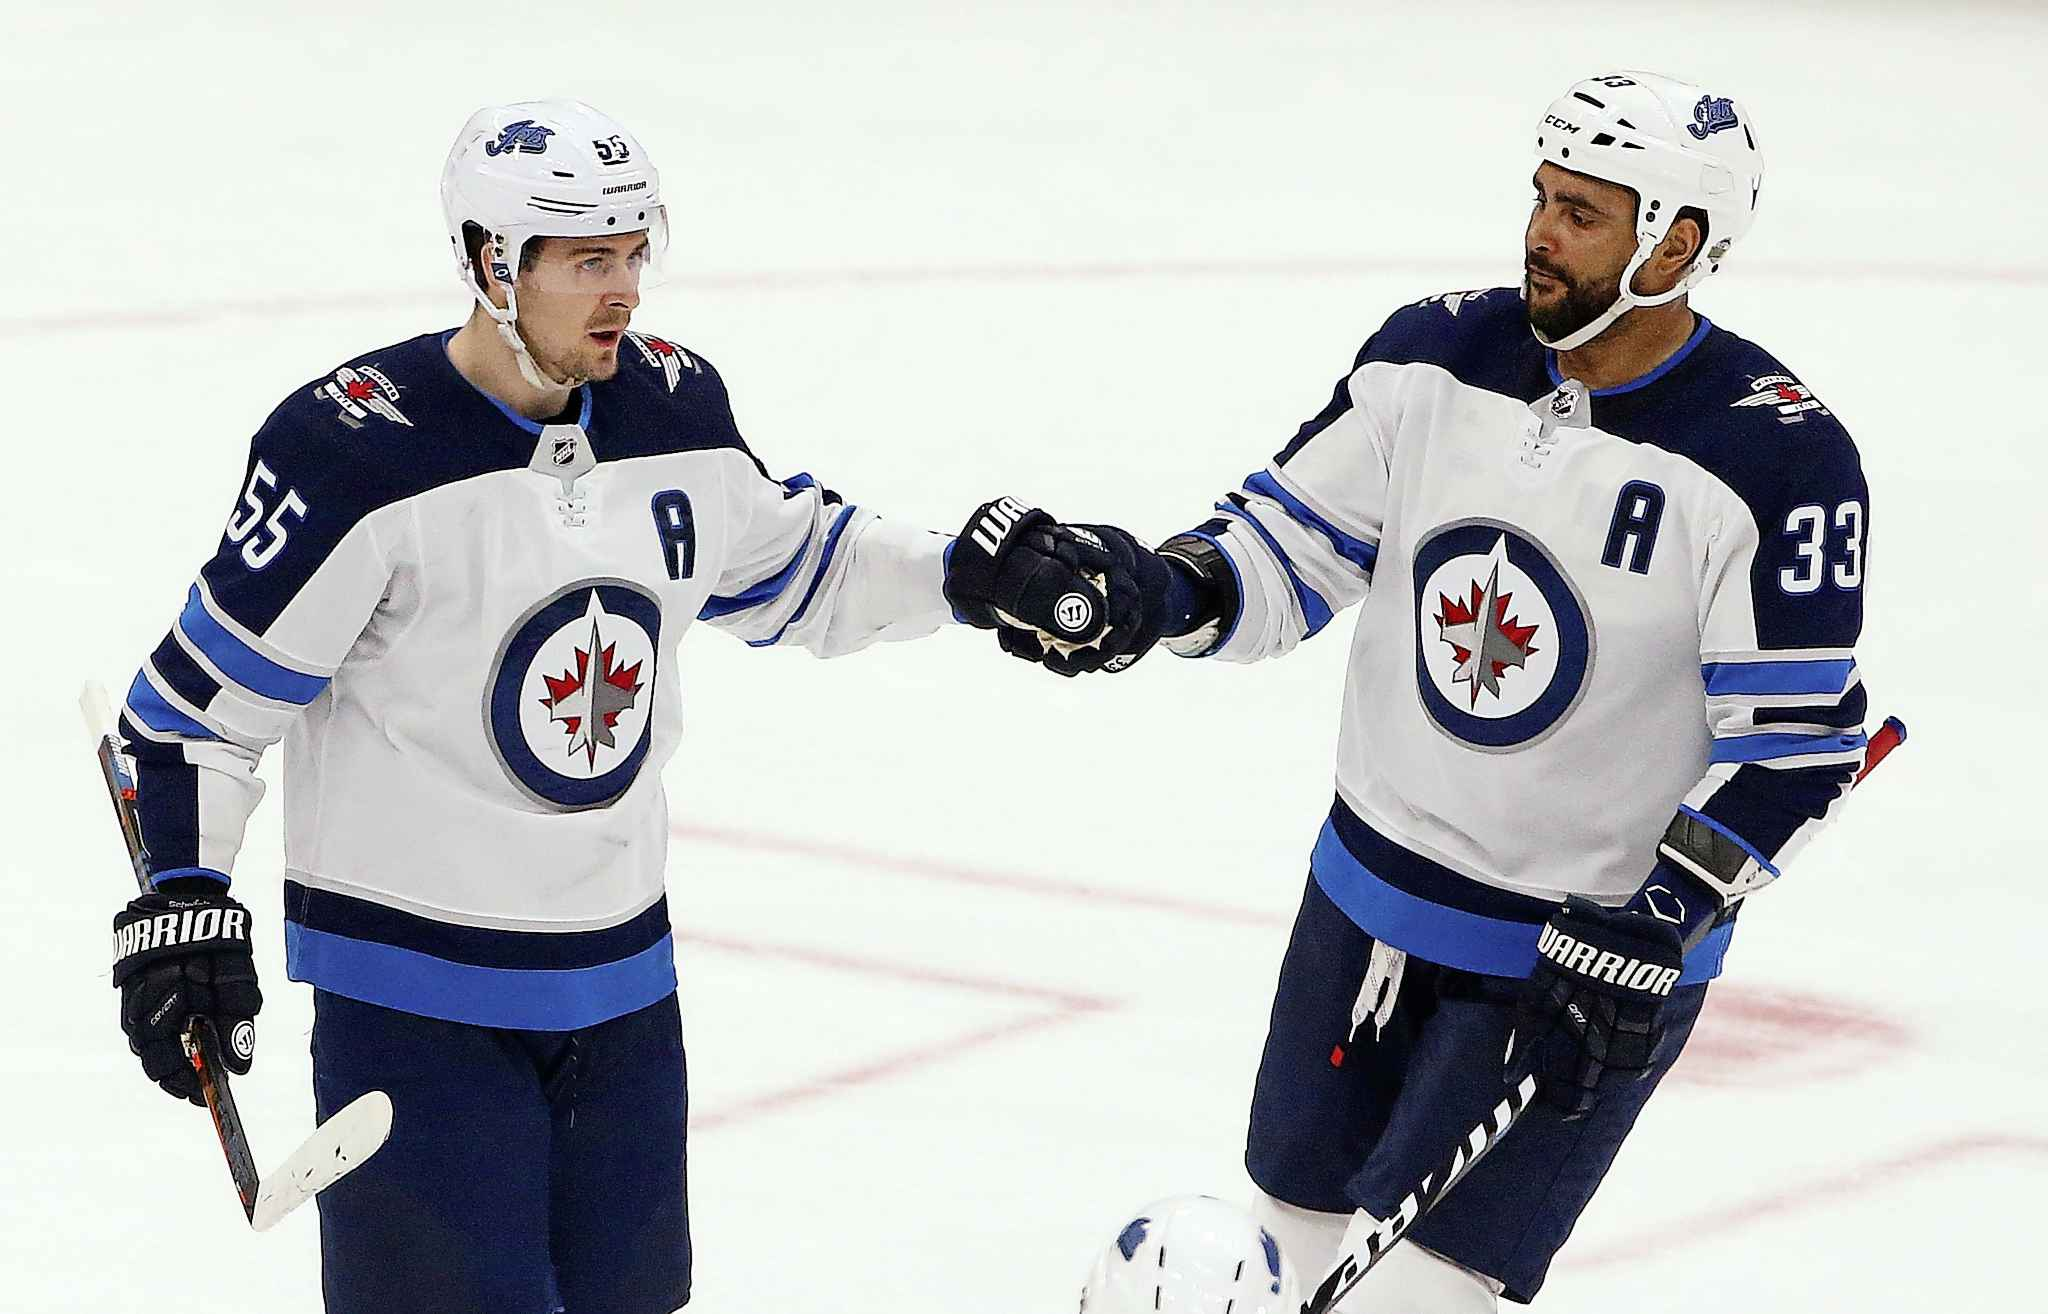 """""""You just gotta wish him the best in his life. You just wish happiness and healthiness for him and his family and that's about it,"""" Scheifele (left) said of Byfuglien. (Ross D. Franklin / The Canadian Press files)"""